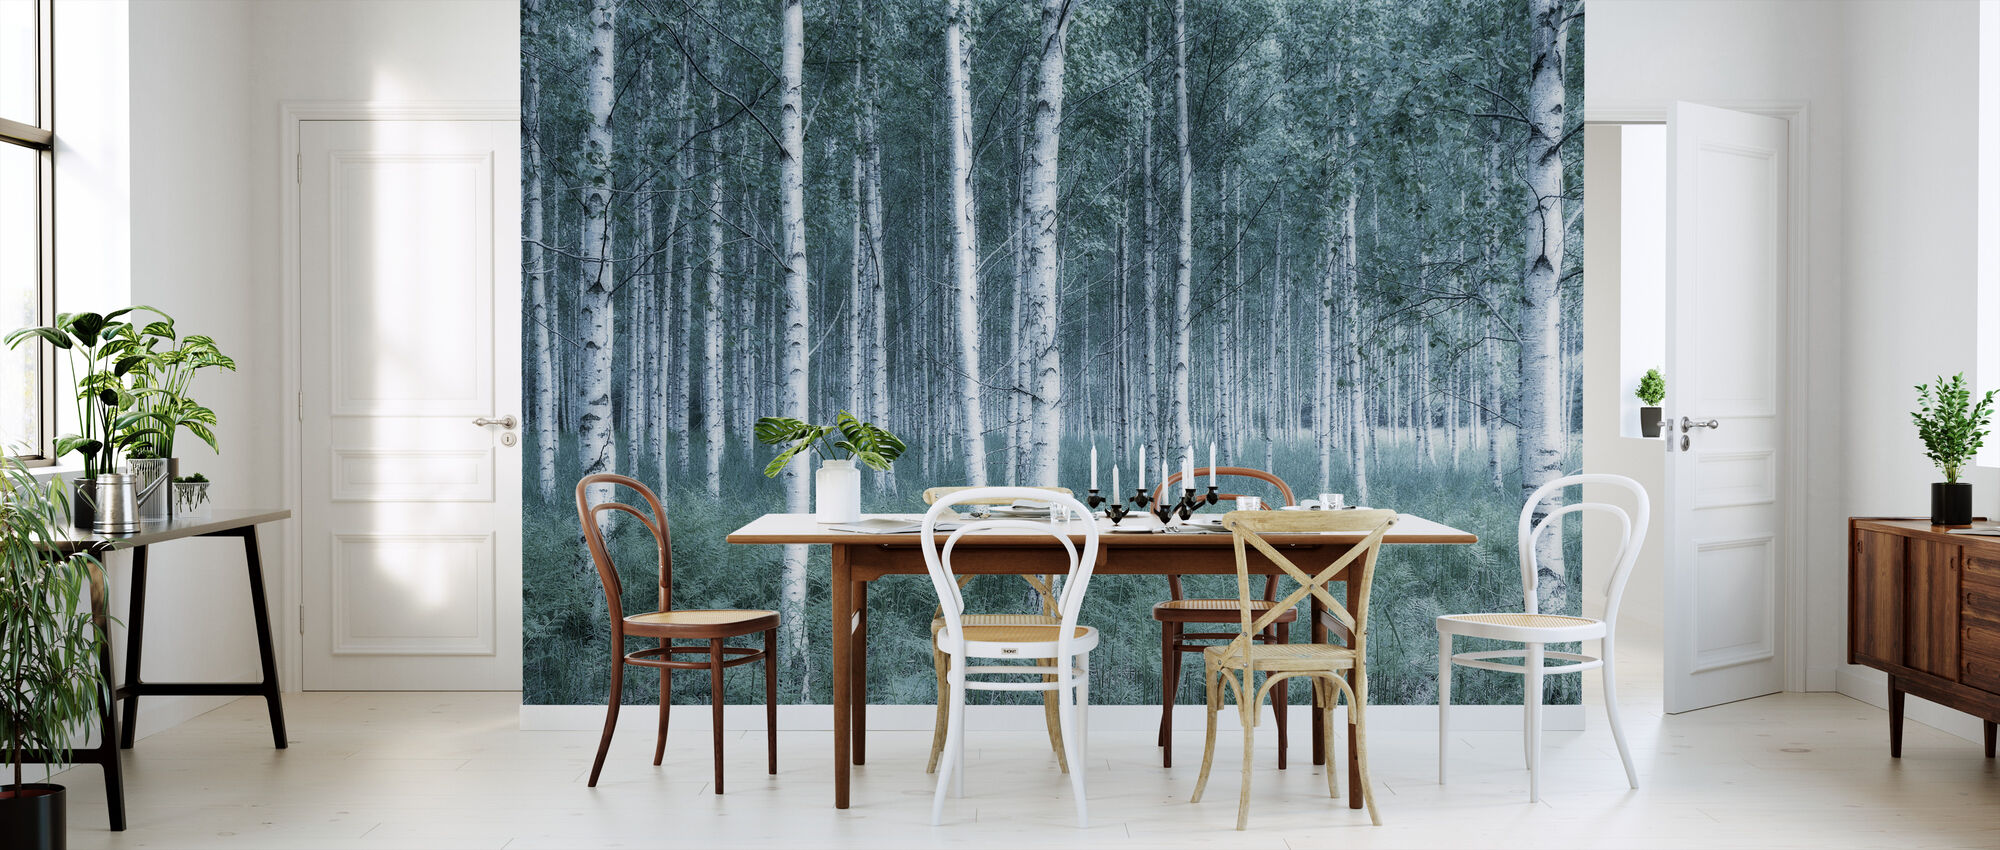 Mystic Birch Forest - Wallpaper - Kitchen